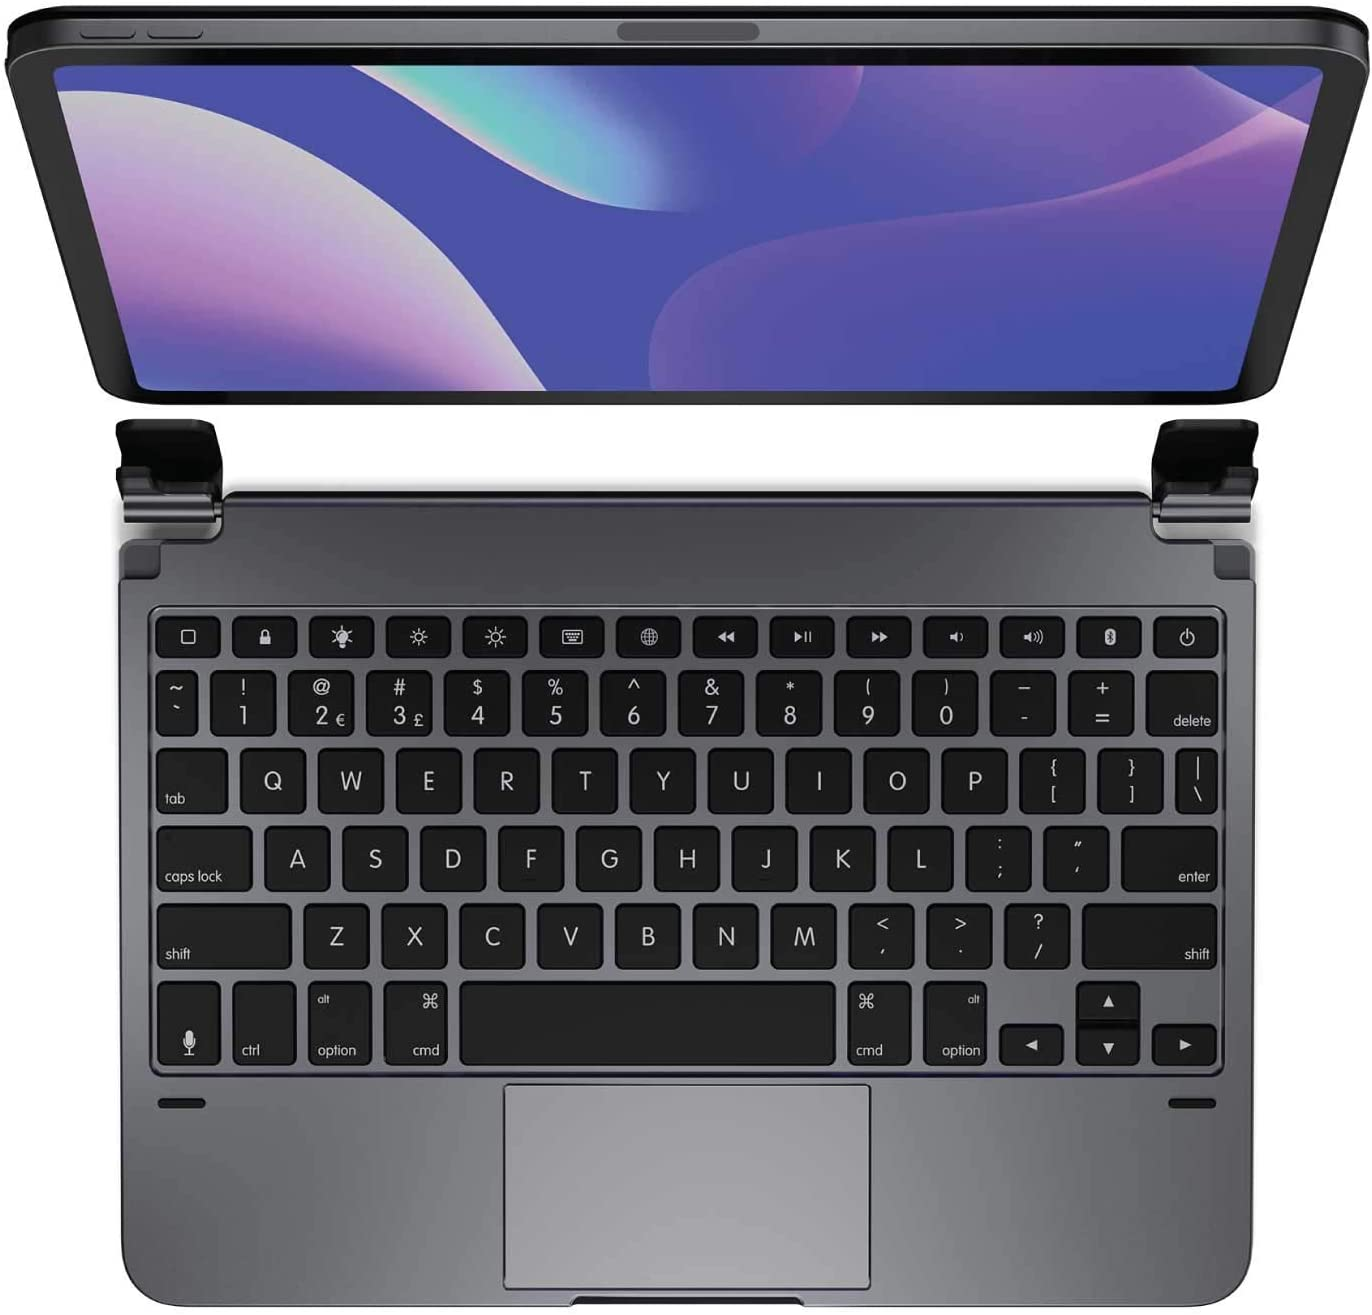 Brydge 11.0 Pro+ Wireless Keyboard with Trackpad | Compatible with iPad Pro 11-inch (1st, 2nd & 3rd Gen) | Native Multi-Touch Trackpad | Backlit Keys | (Space Gray)